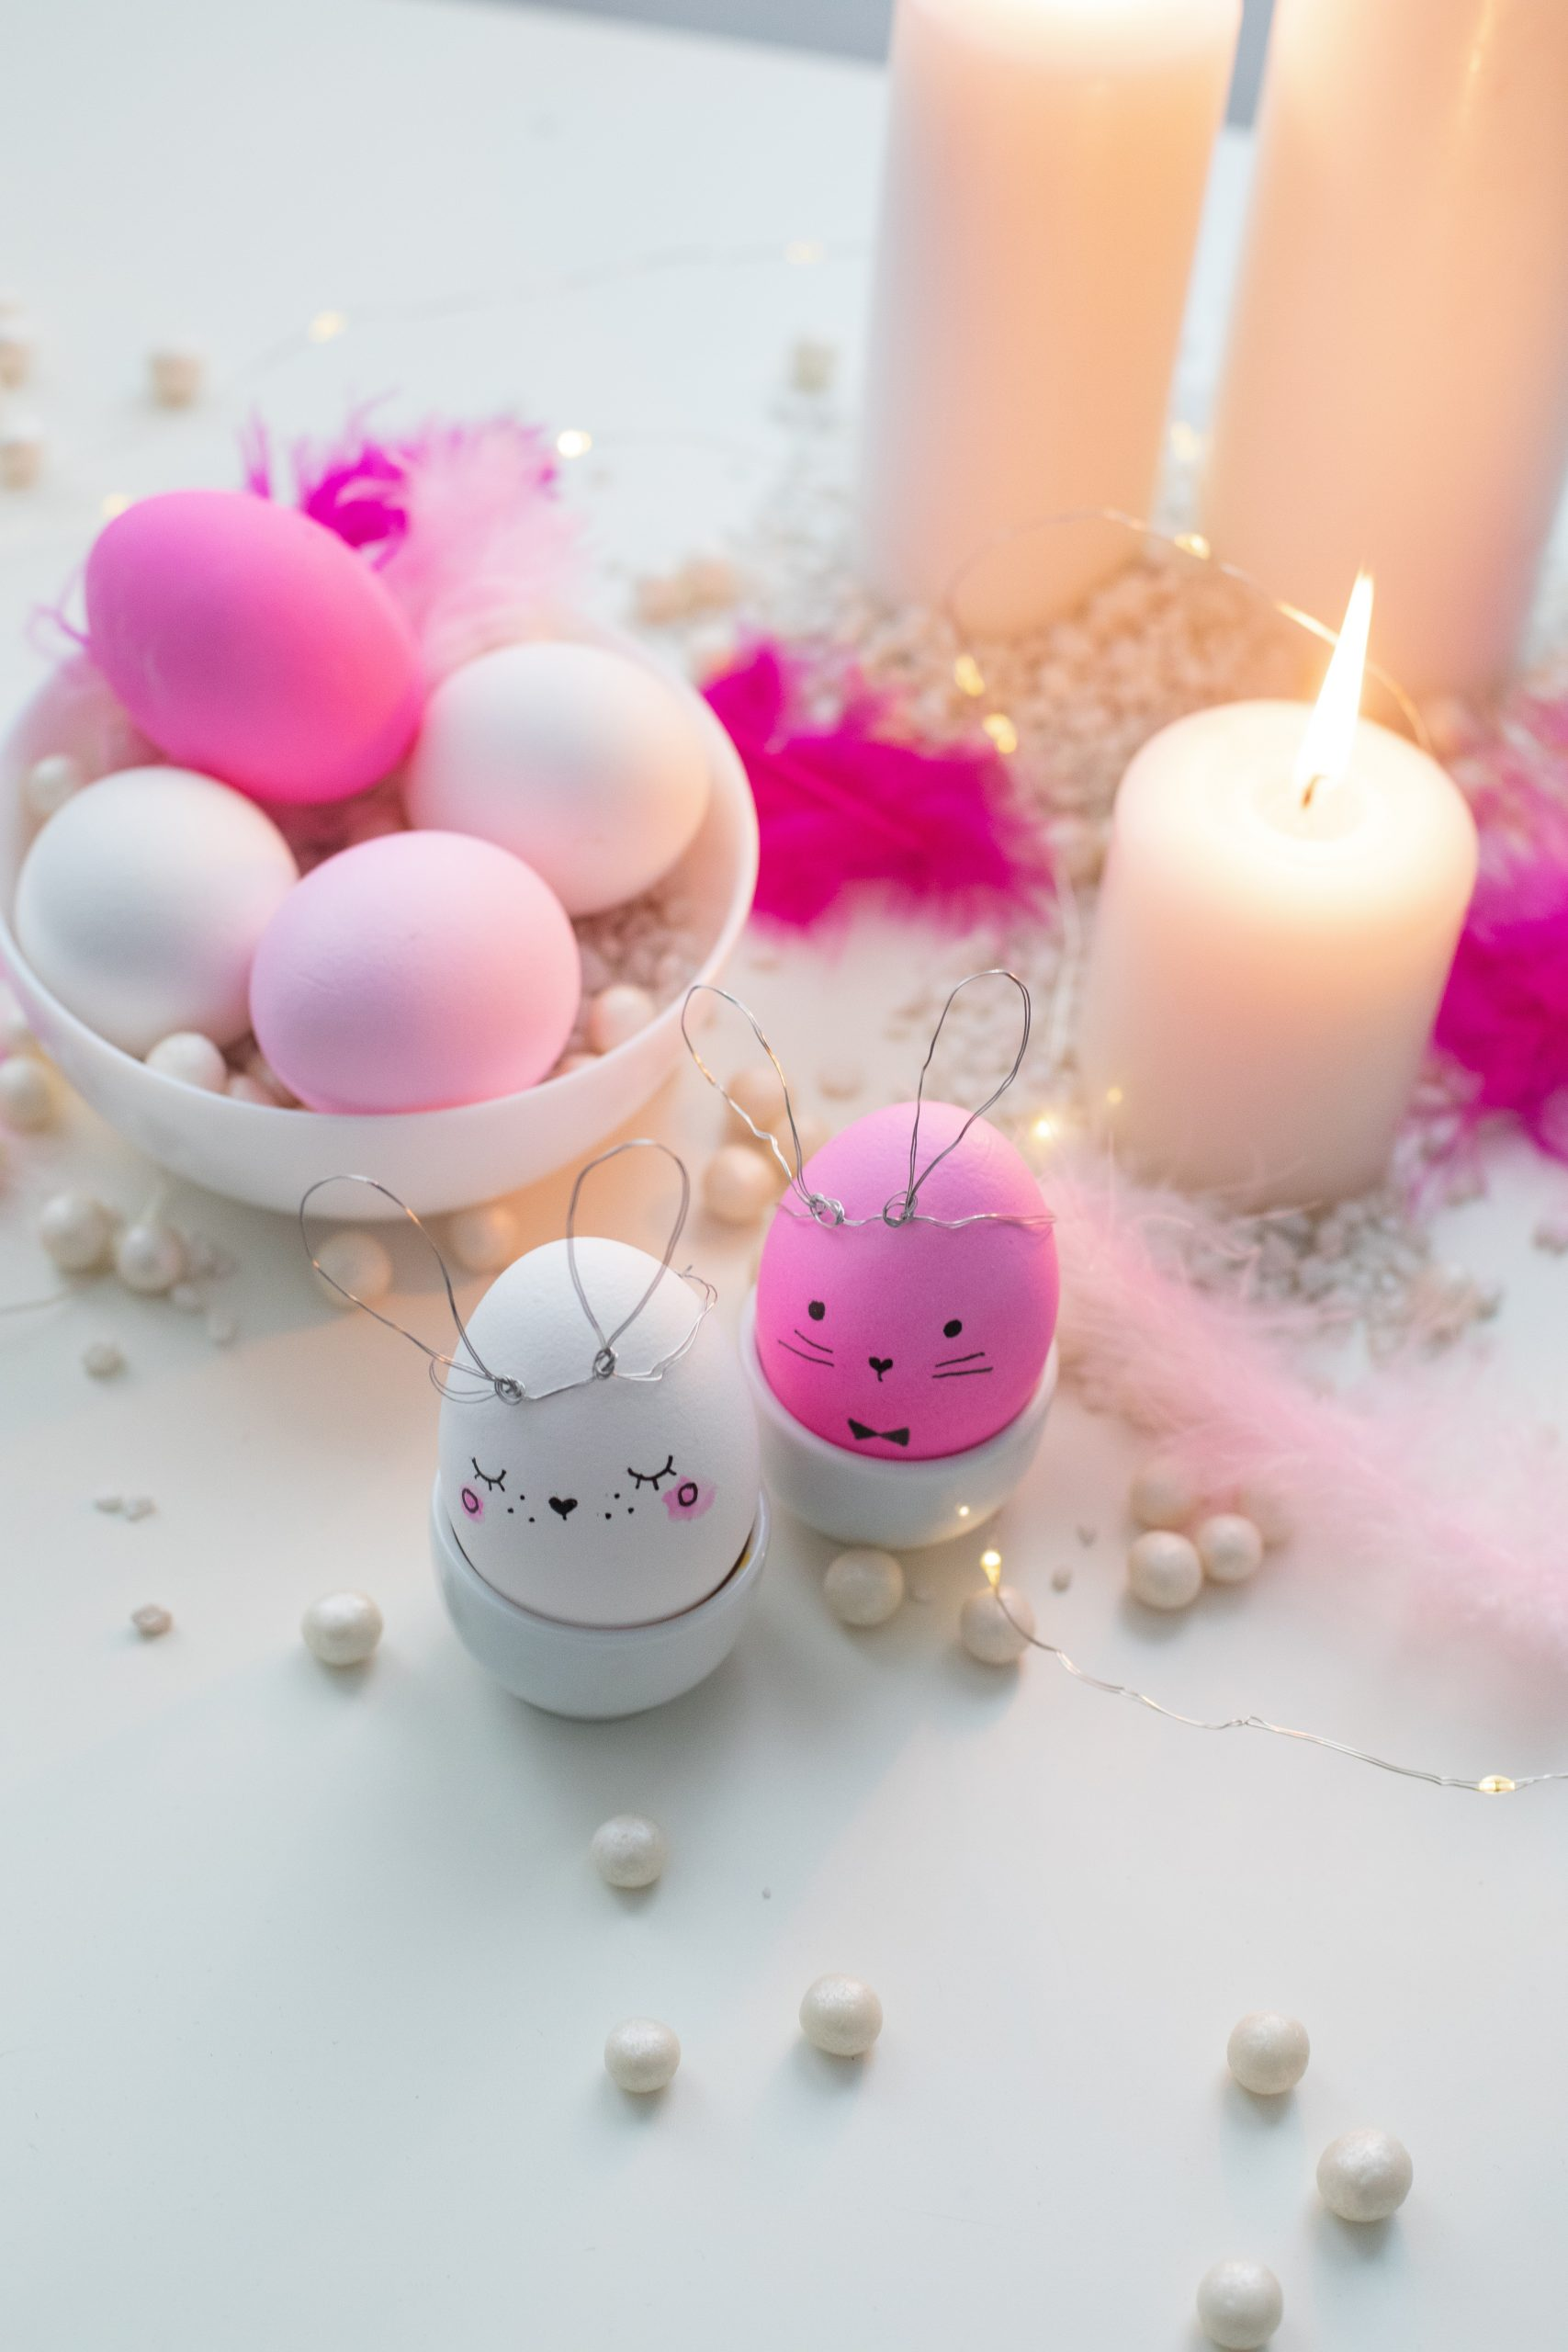 10 Amazing Easter Decorations for Your Home [2021]